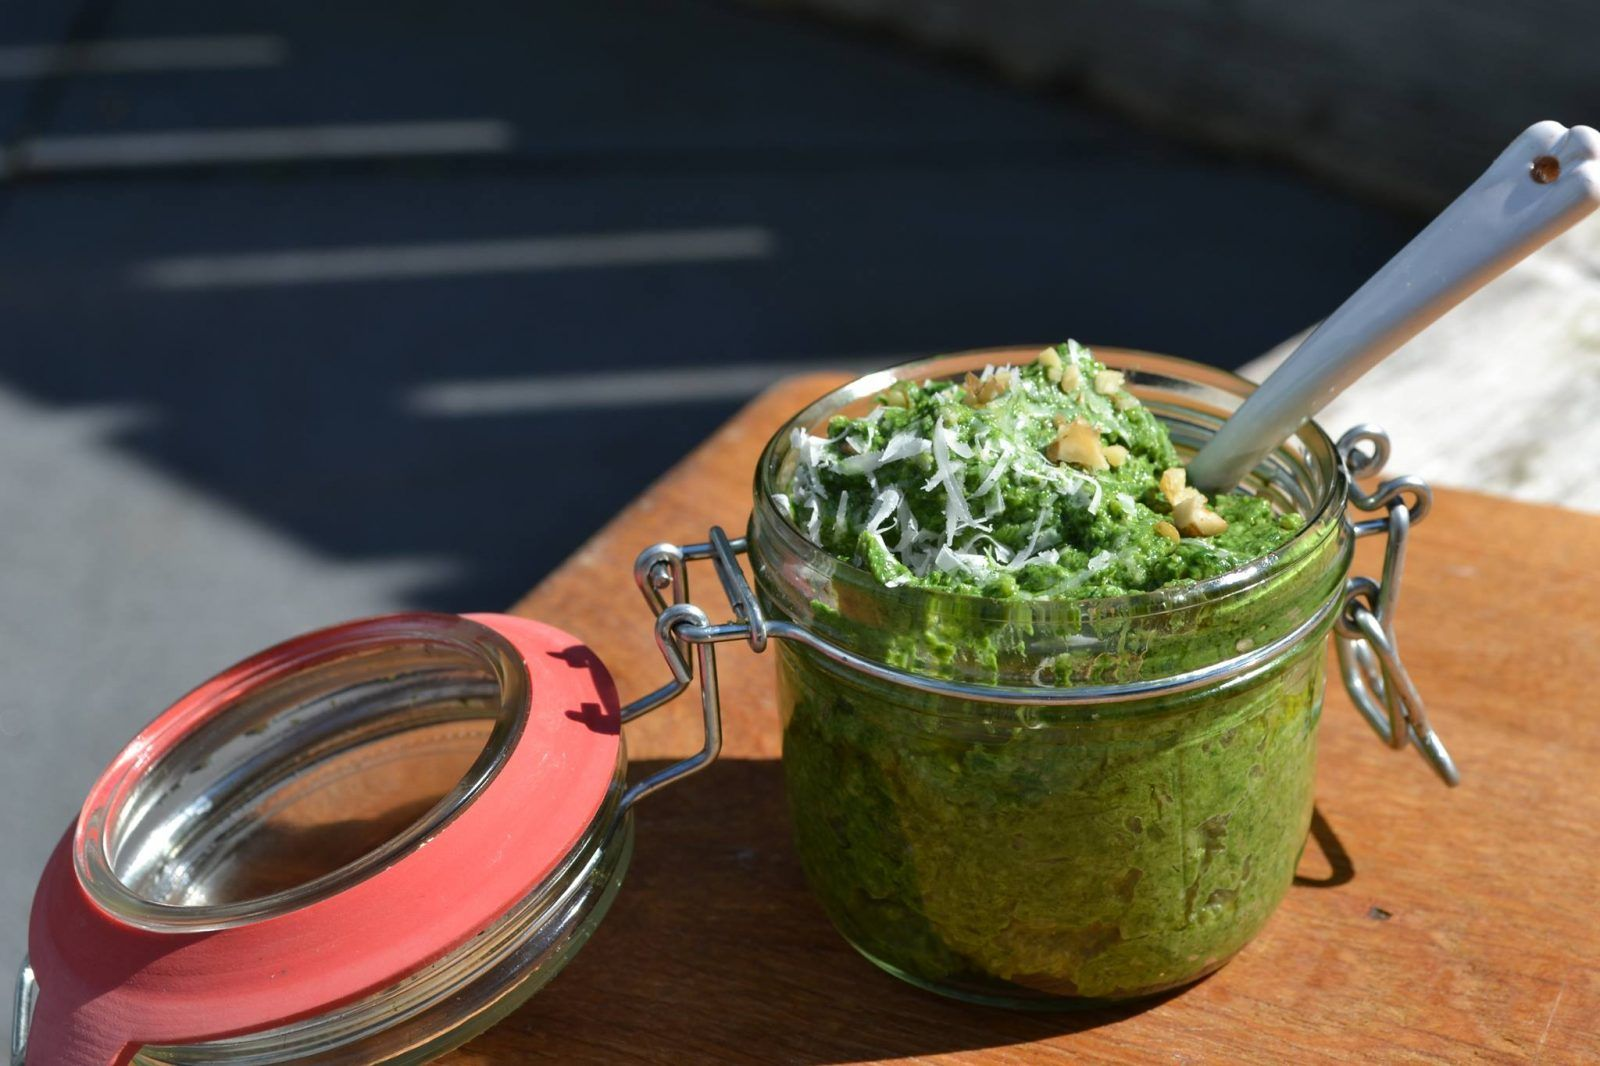 brandnetel pesto friesland recept foodie